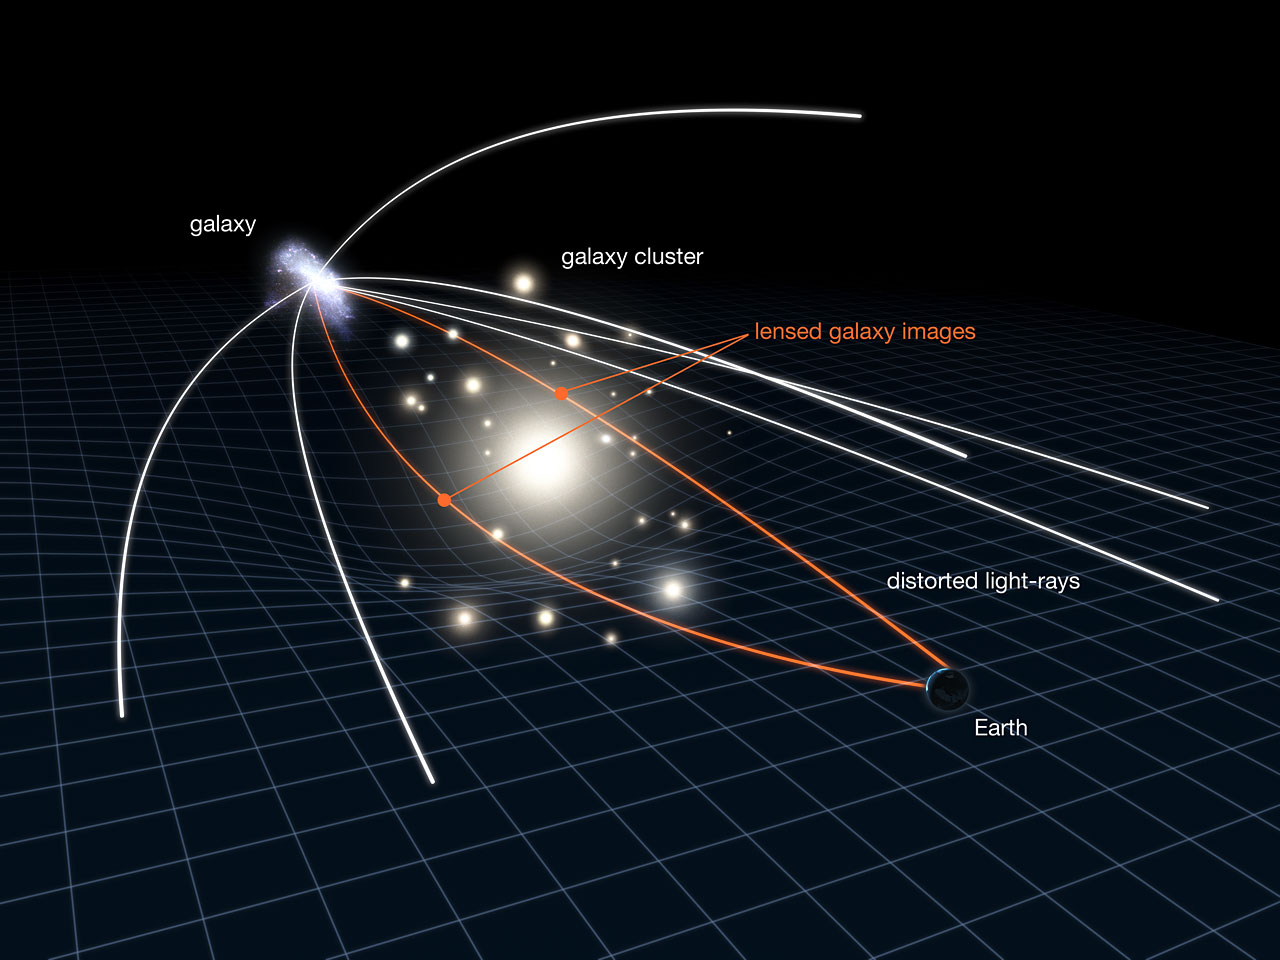 Gravitational lensing in action